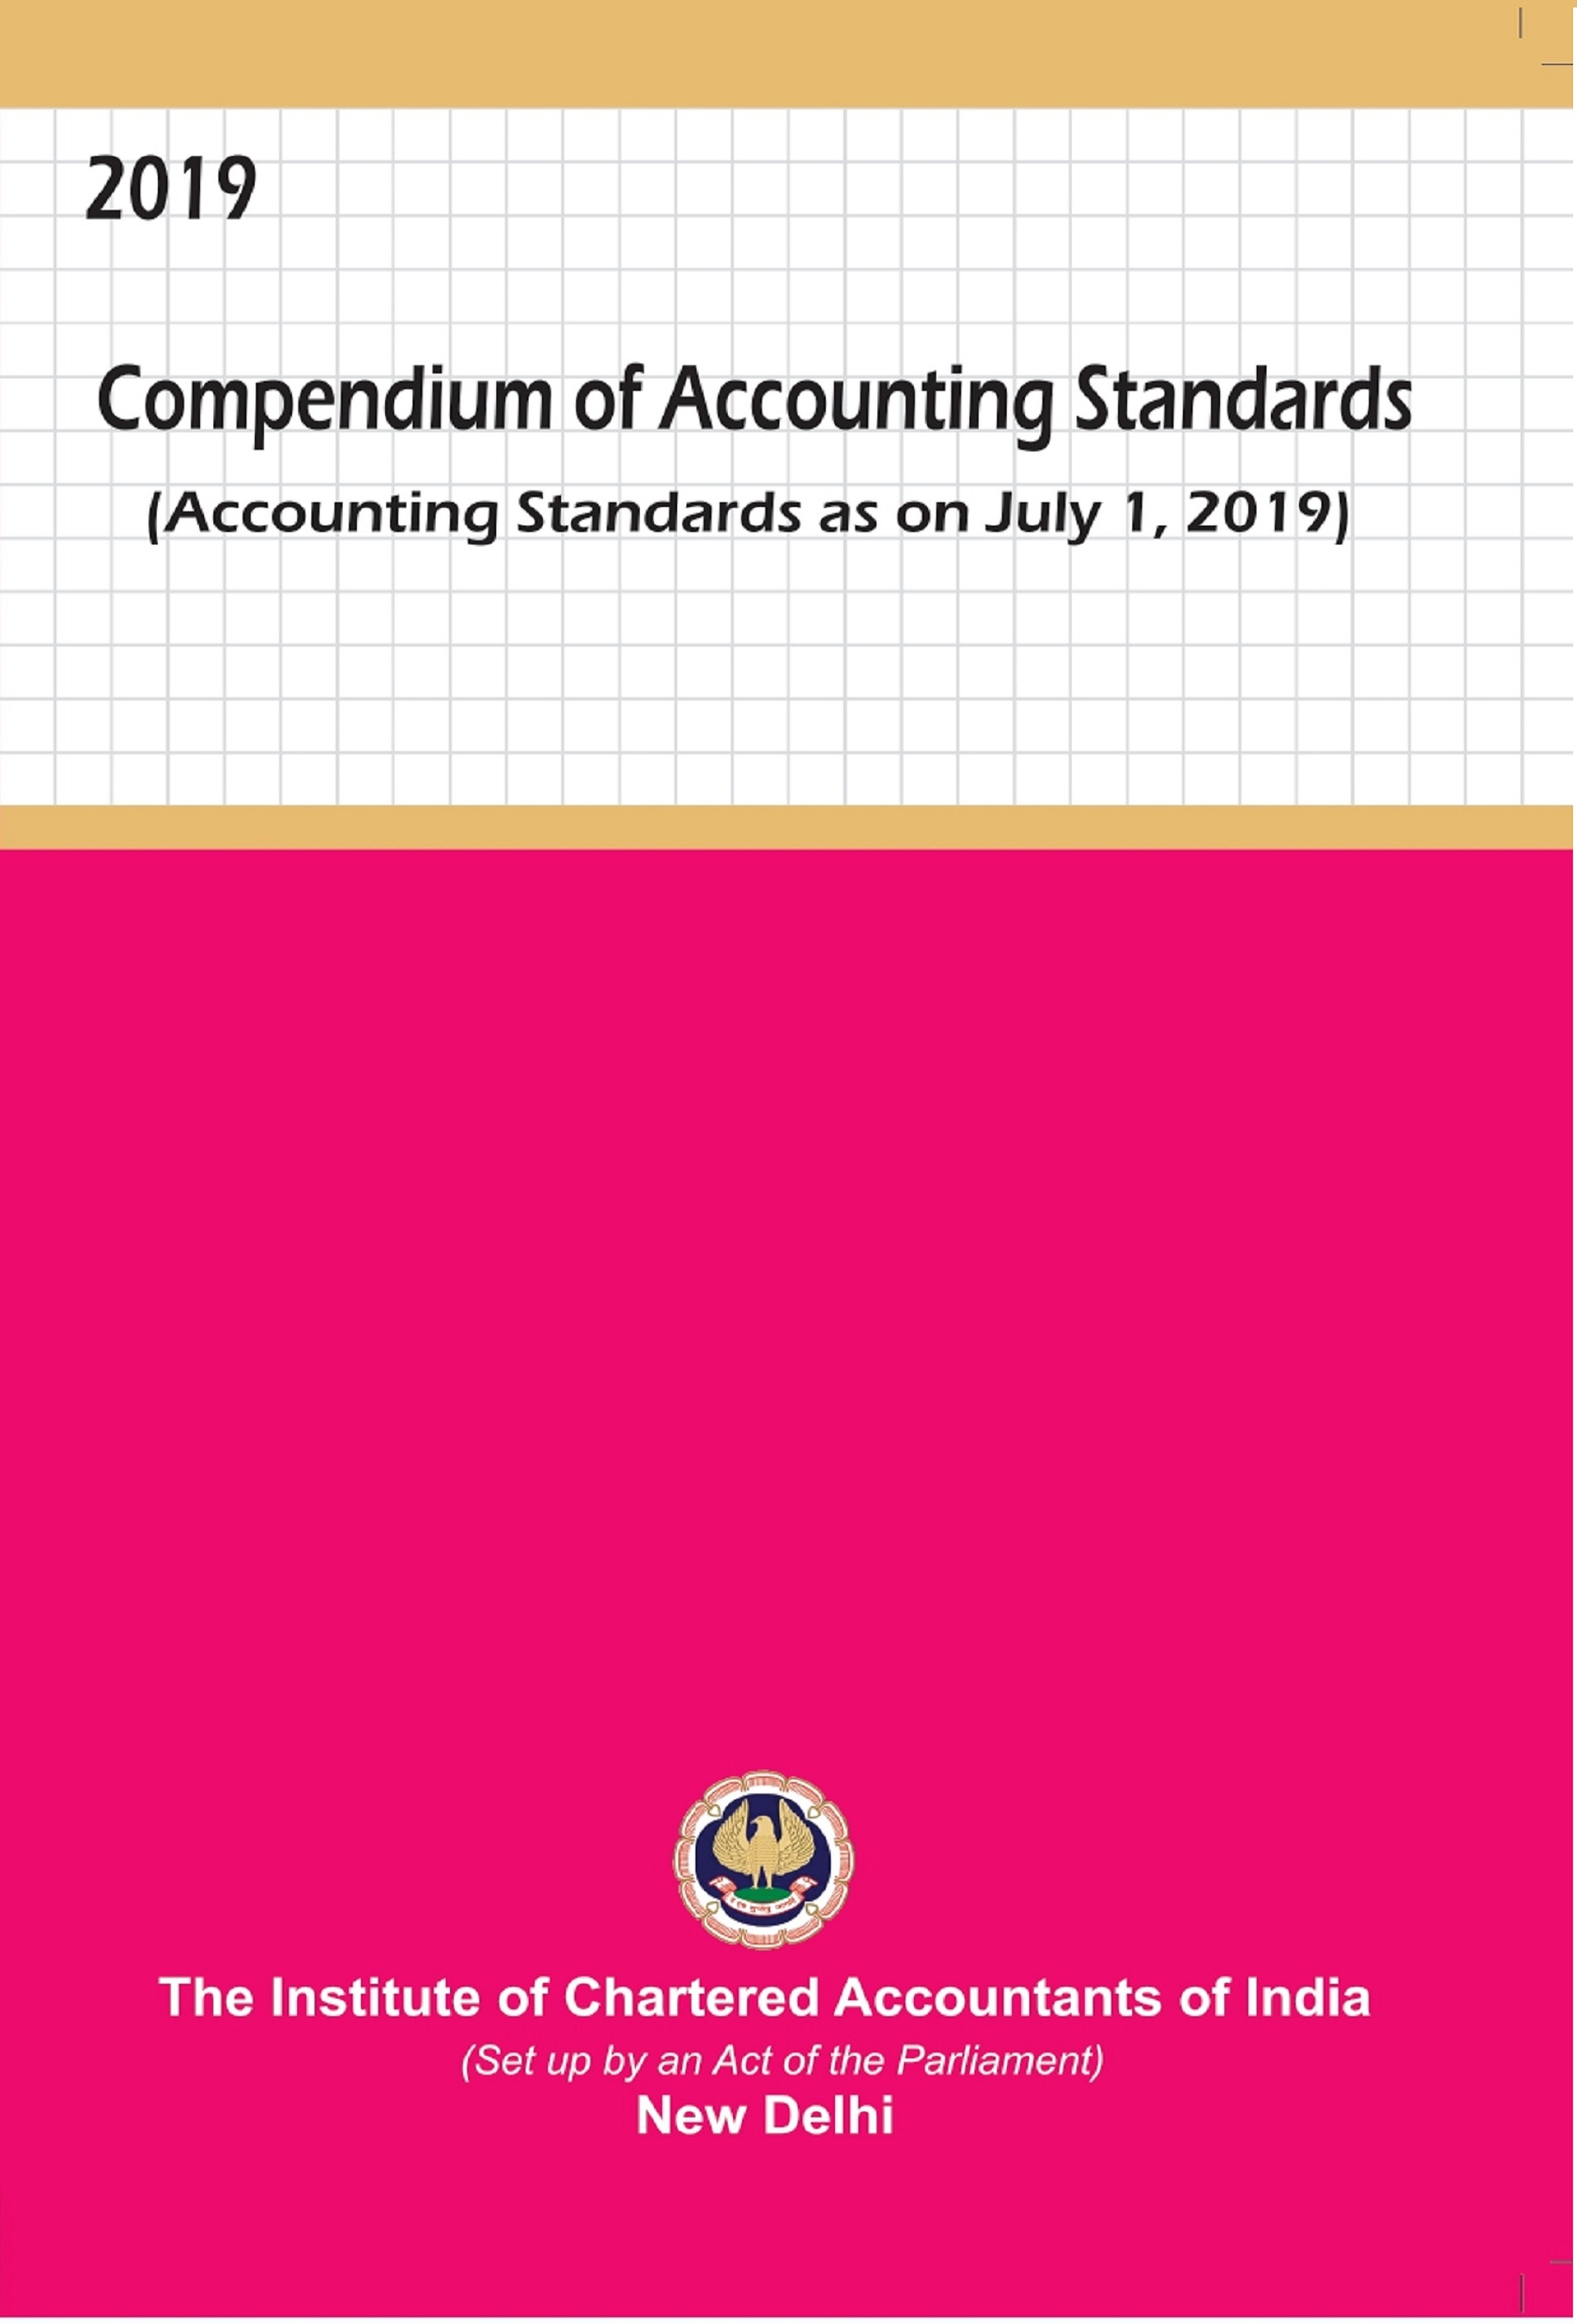 Compendium of Accounting Standards as on July 1, 2019